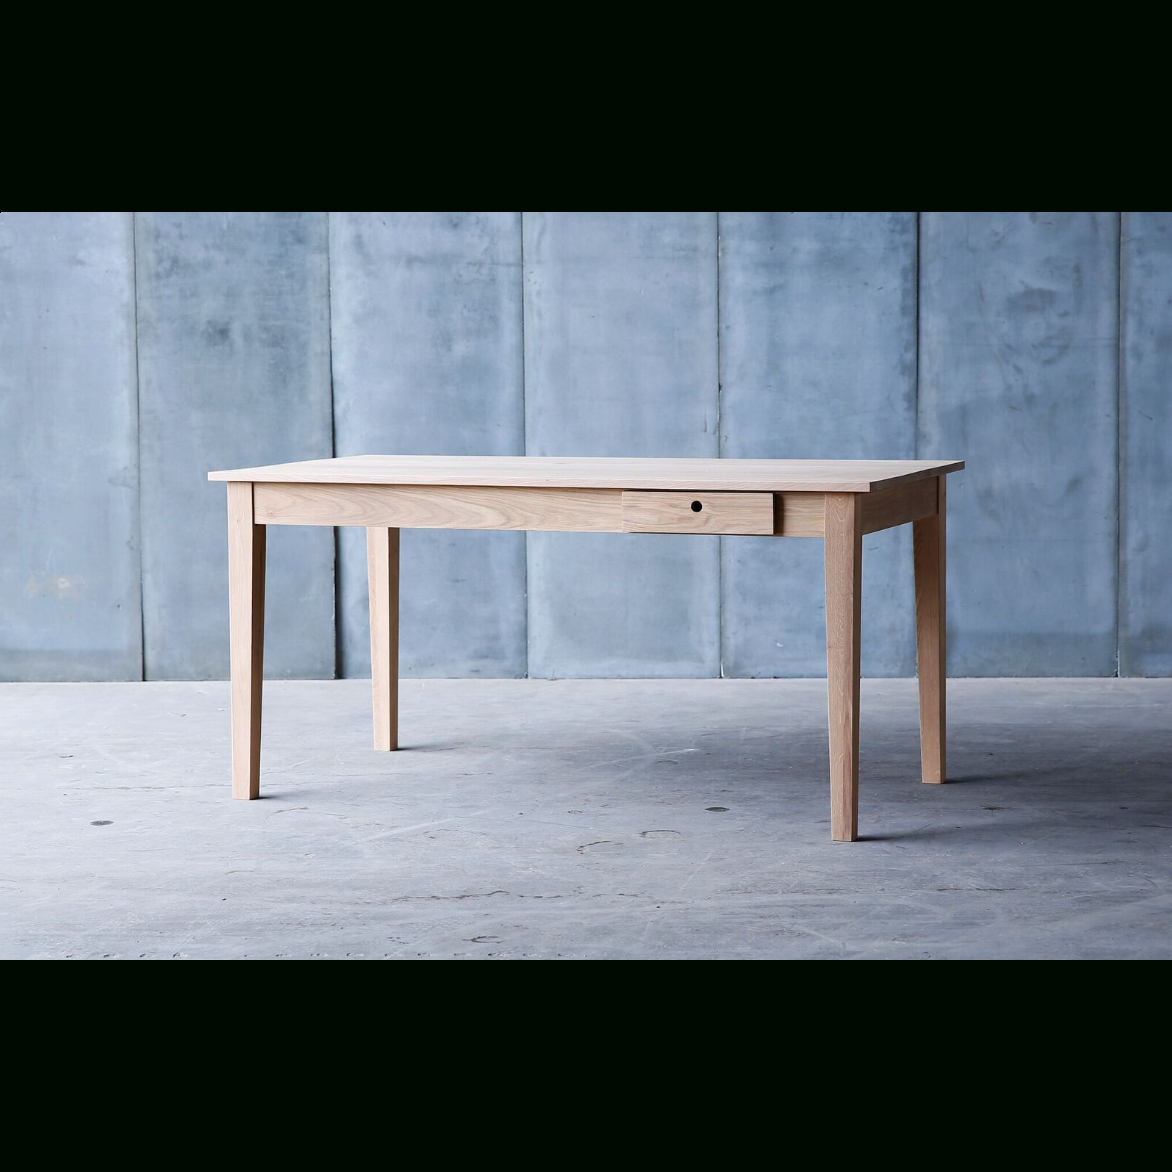 Heerenhuis Farmer Table Intended For Current Falmer 3 Piece Solid Wood Dining Sets (View 3 of 20)